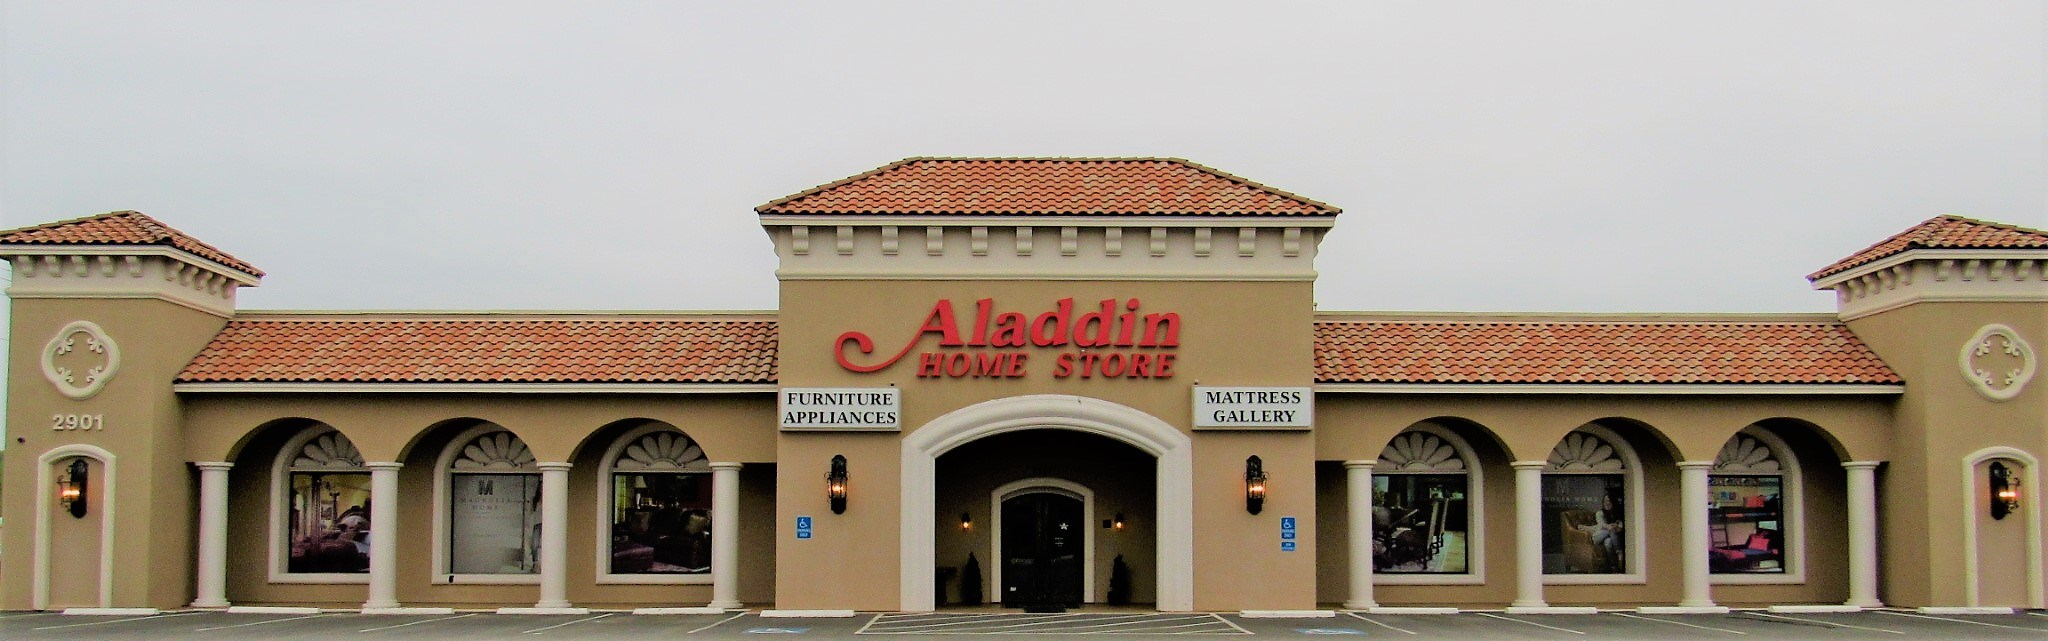 Aladdin Home Store Storefront